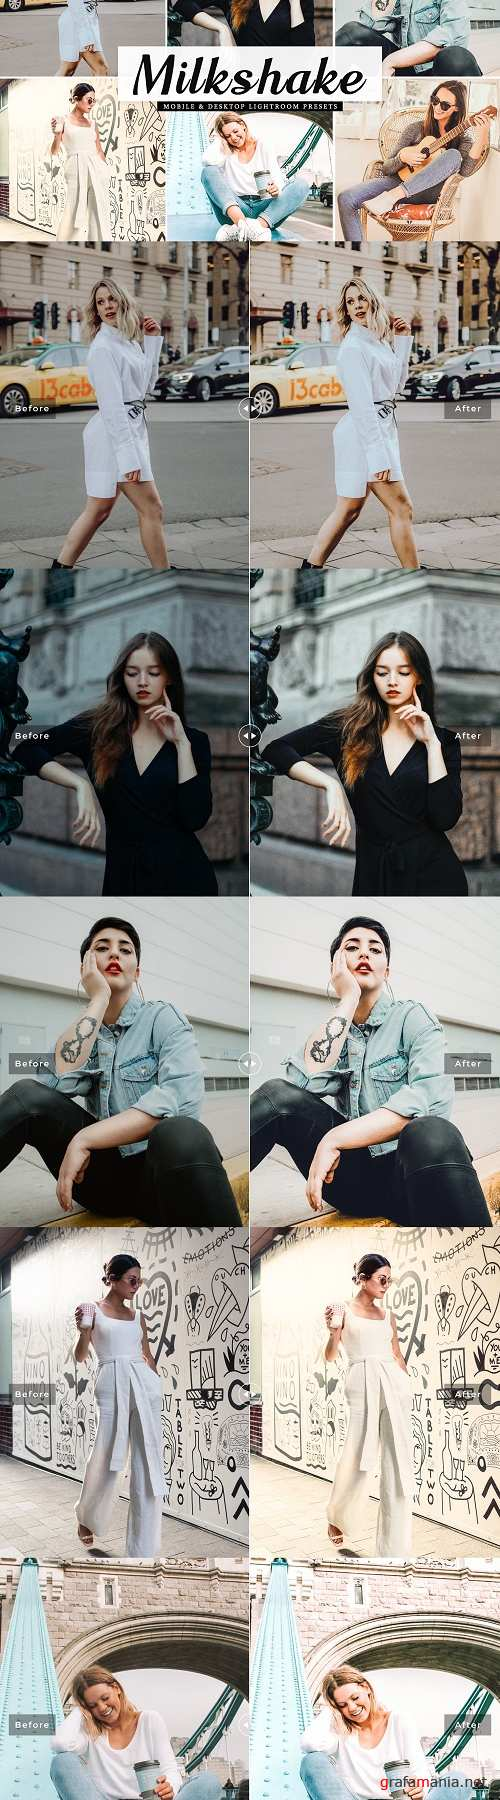 Milkshake Lightroom Presets Pack - 4281033